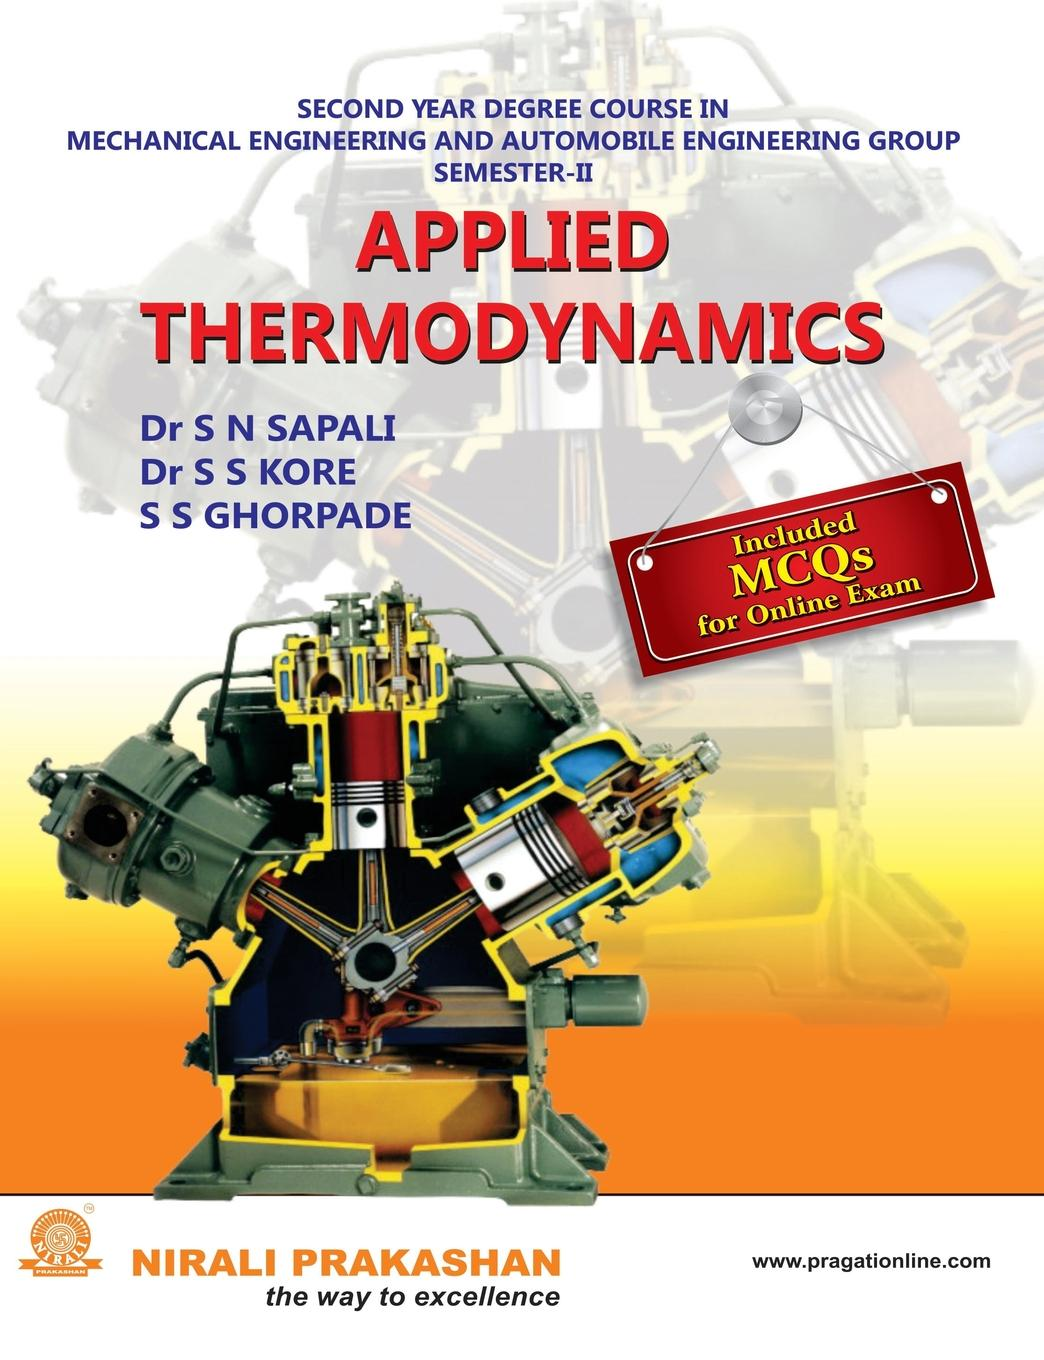 DR S S KORE, S S GHORPADE, DR S N SAPALI APPLIED THERMODYNAMICS